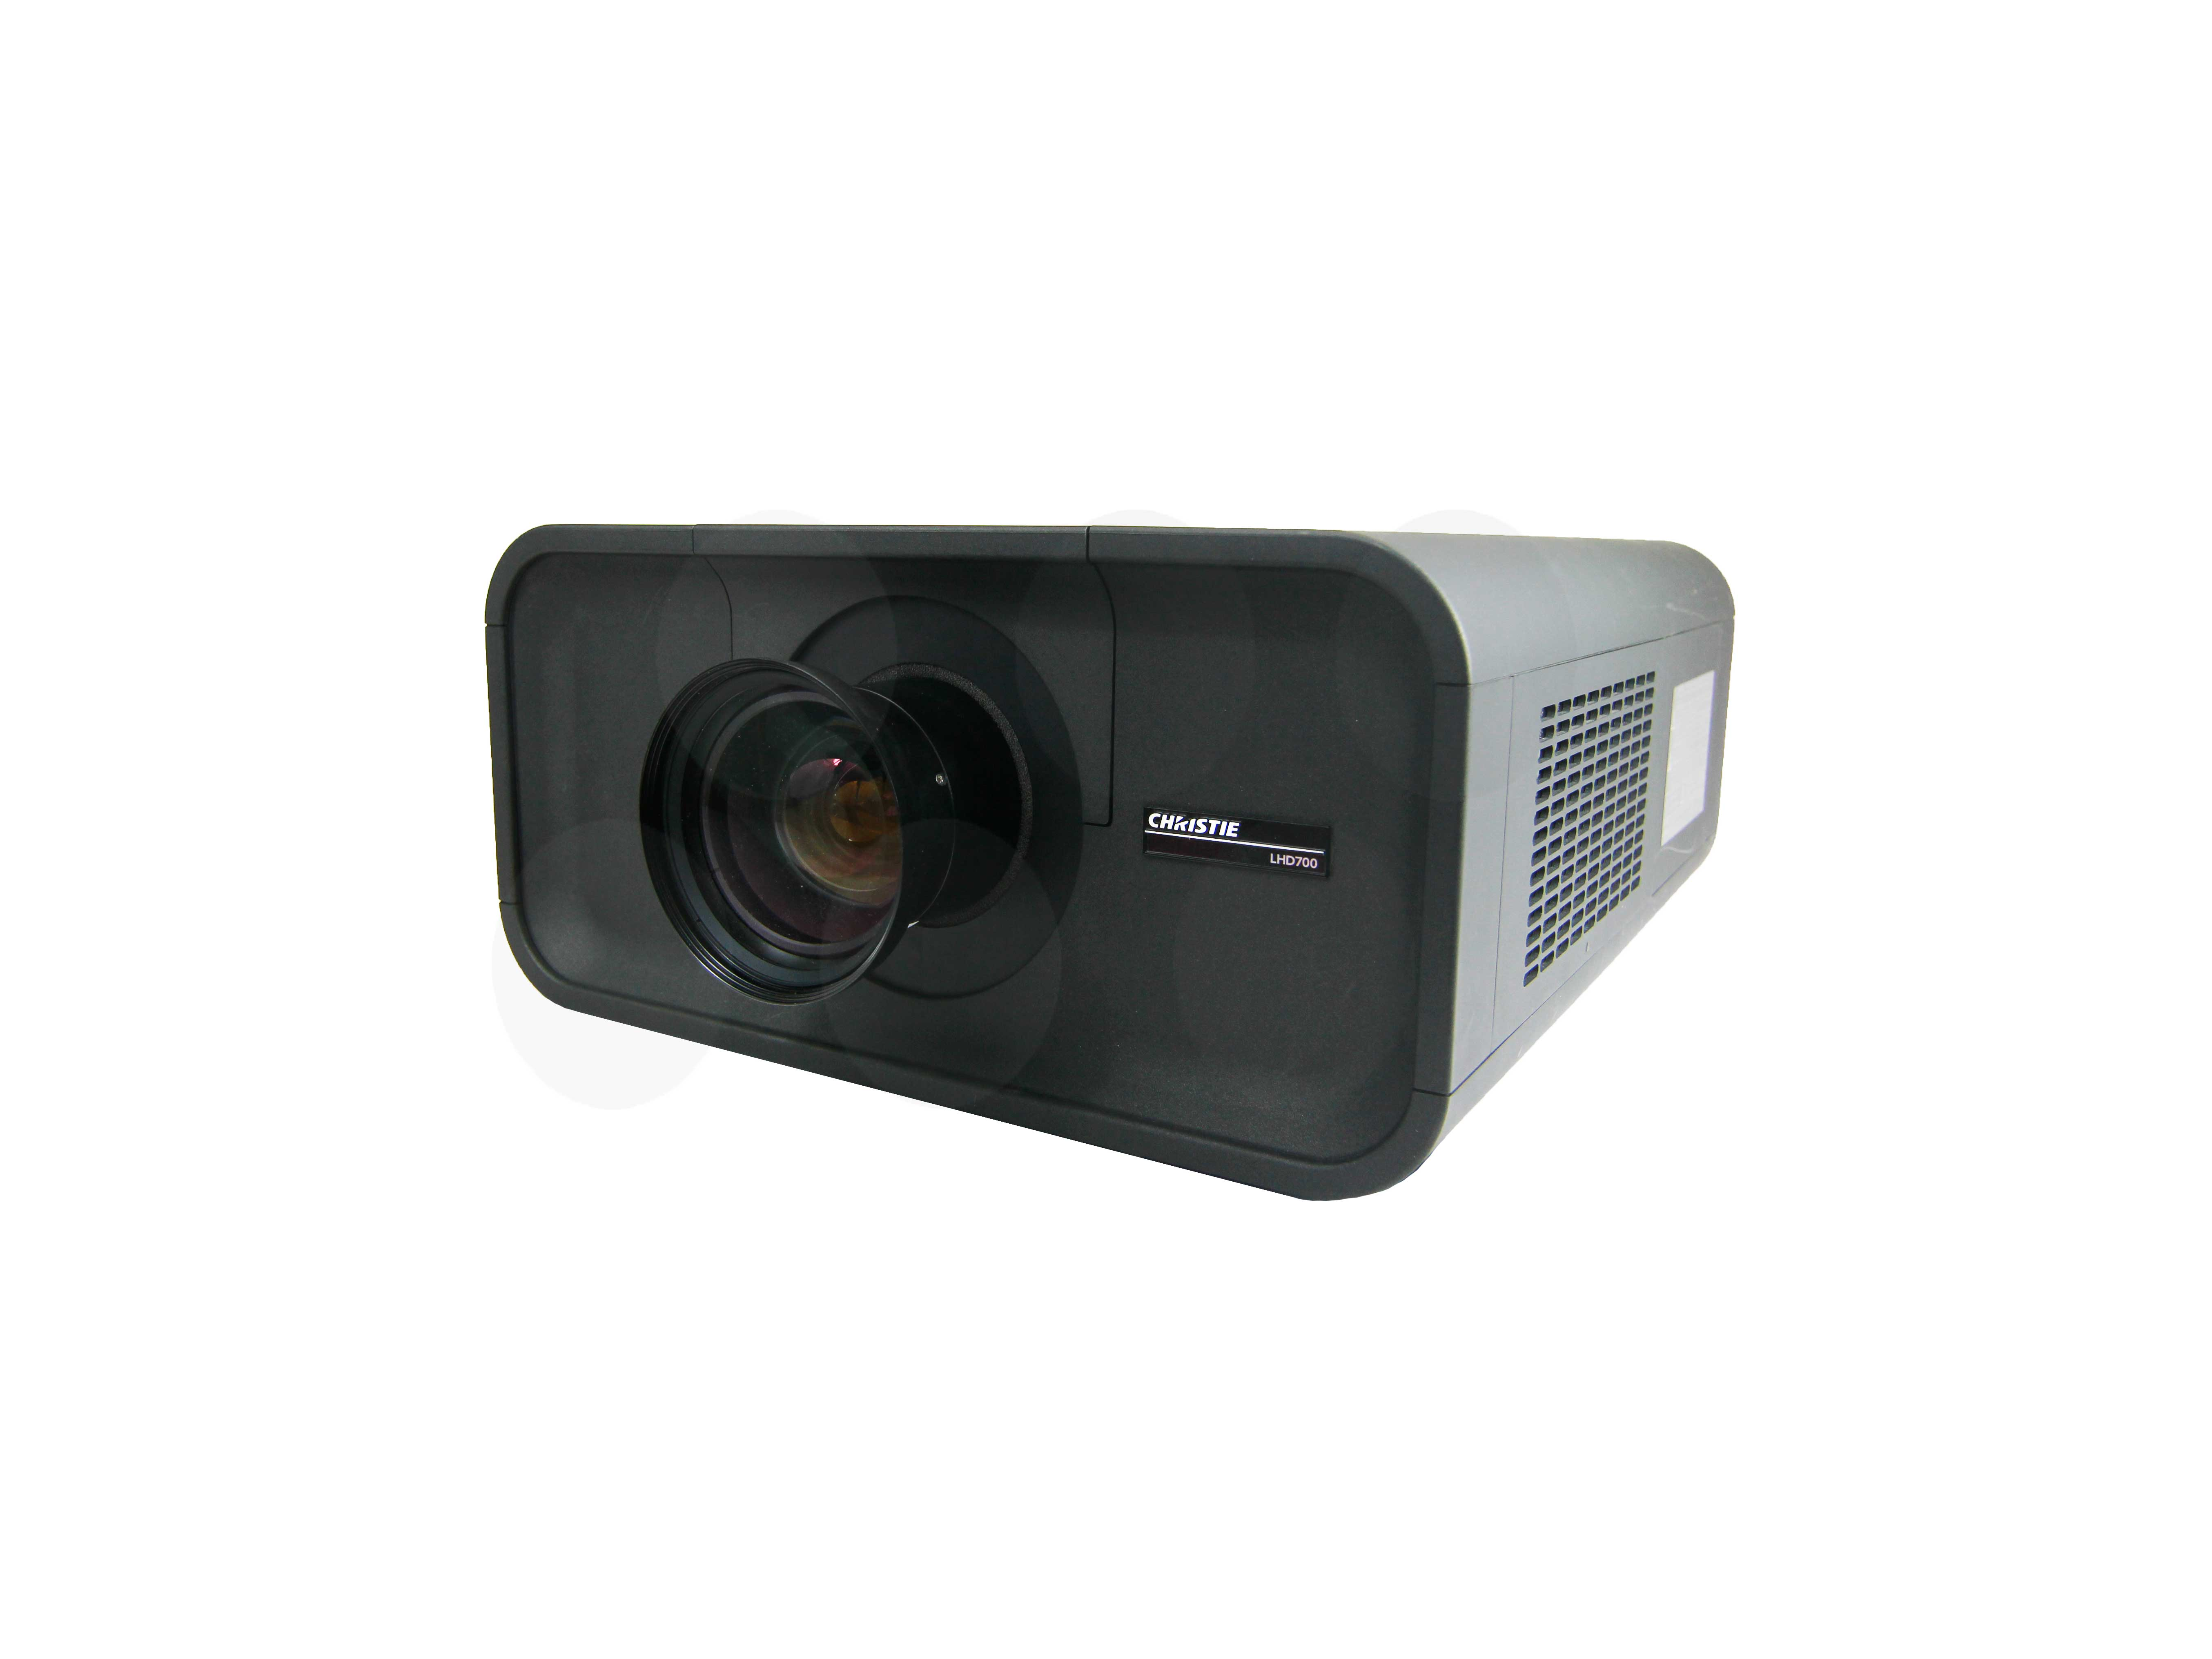 Christie LHD700 Full HD Projector